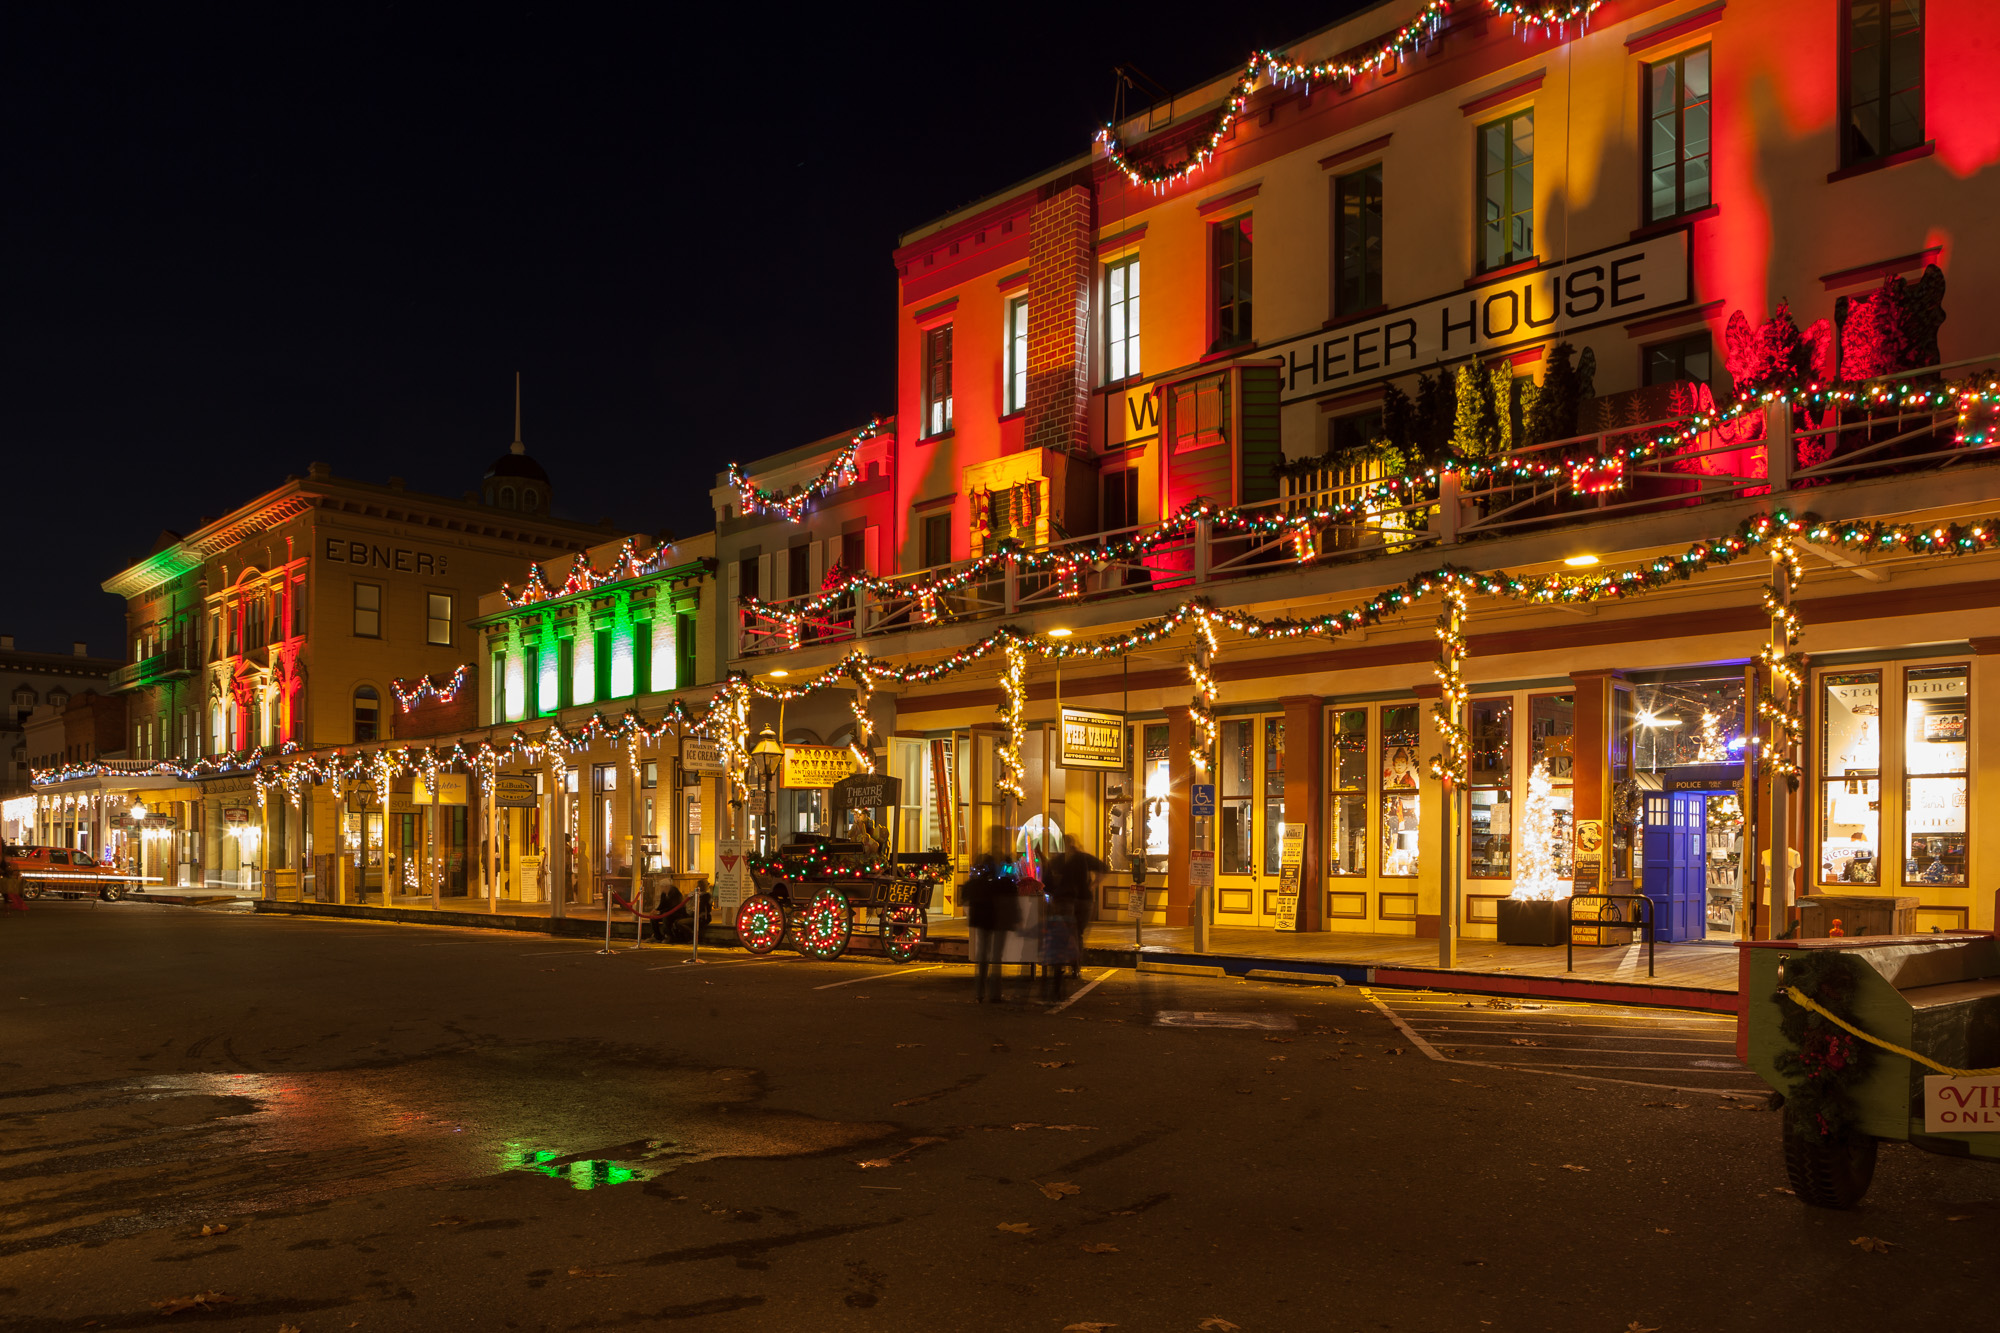 Old Sacramento - A place full of history - Gate to Adventures